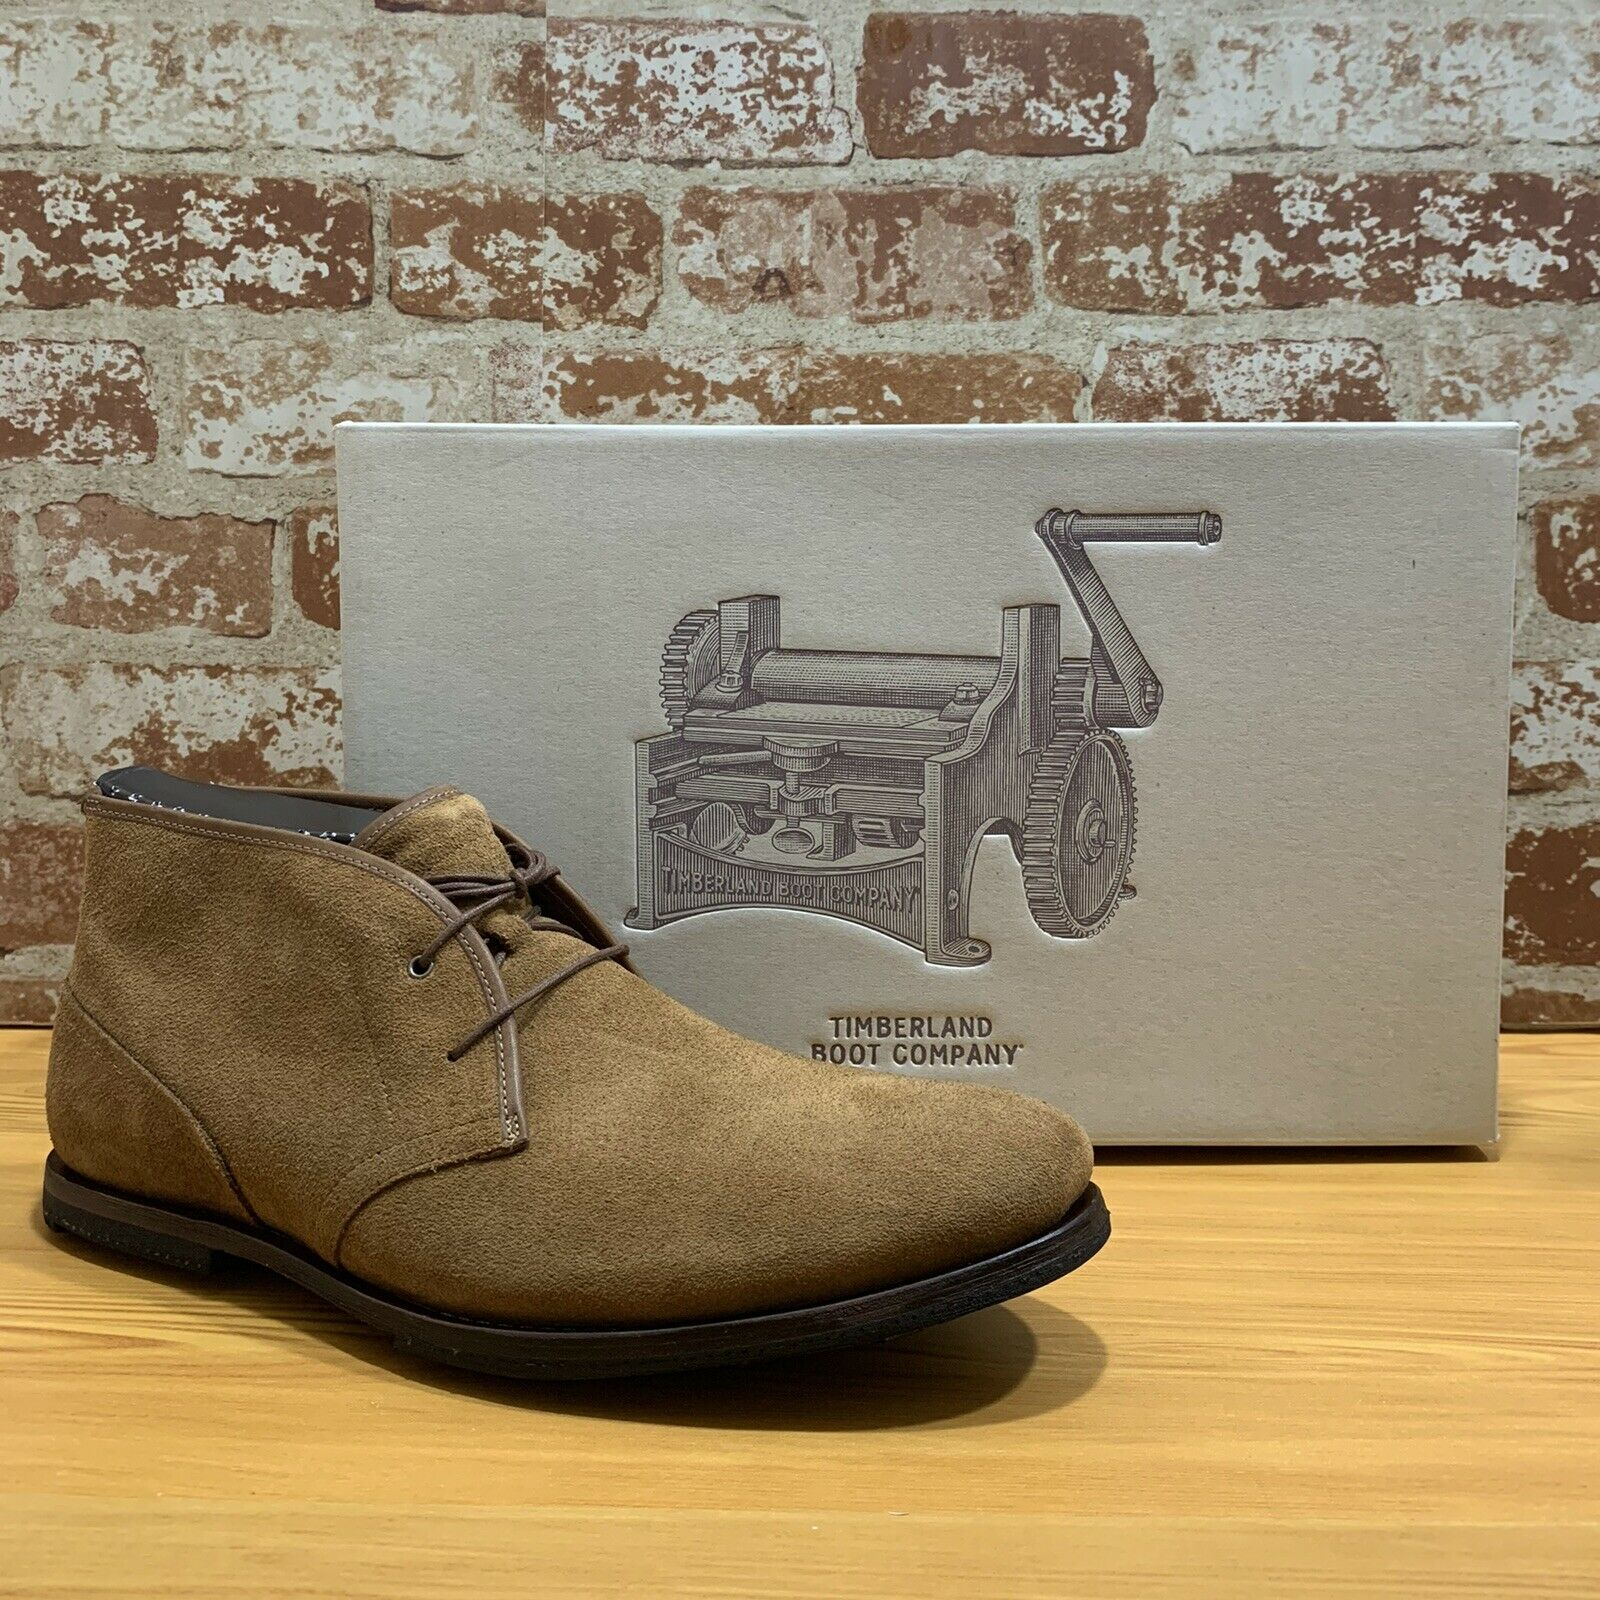 Mens Timberland Wodehouse Lost History Suede Chukka BOOTS Company All Sizes  8 for sale online | eBay